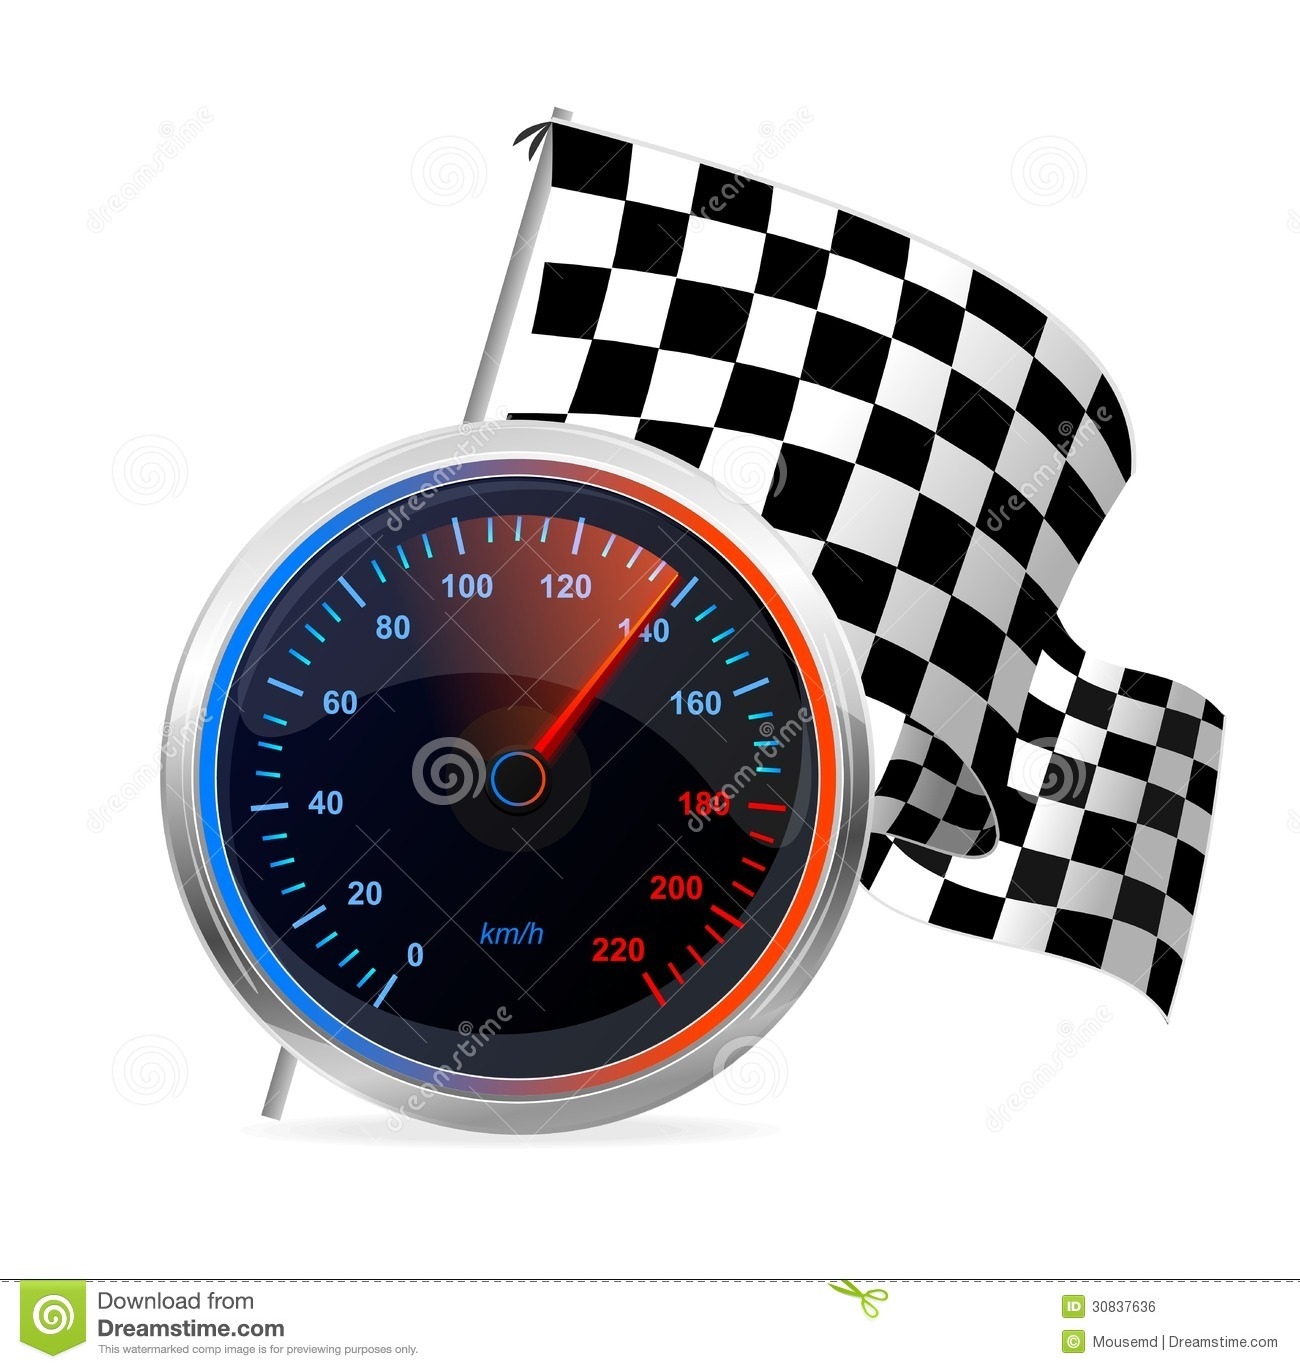 Royalty Free Stock Image Racing Speedometer Checkered Flag Vector Image30837636 on electric car illustration